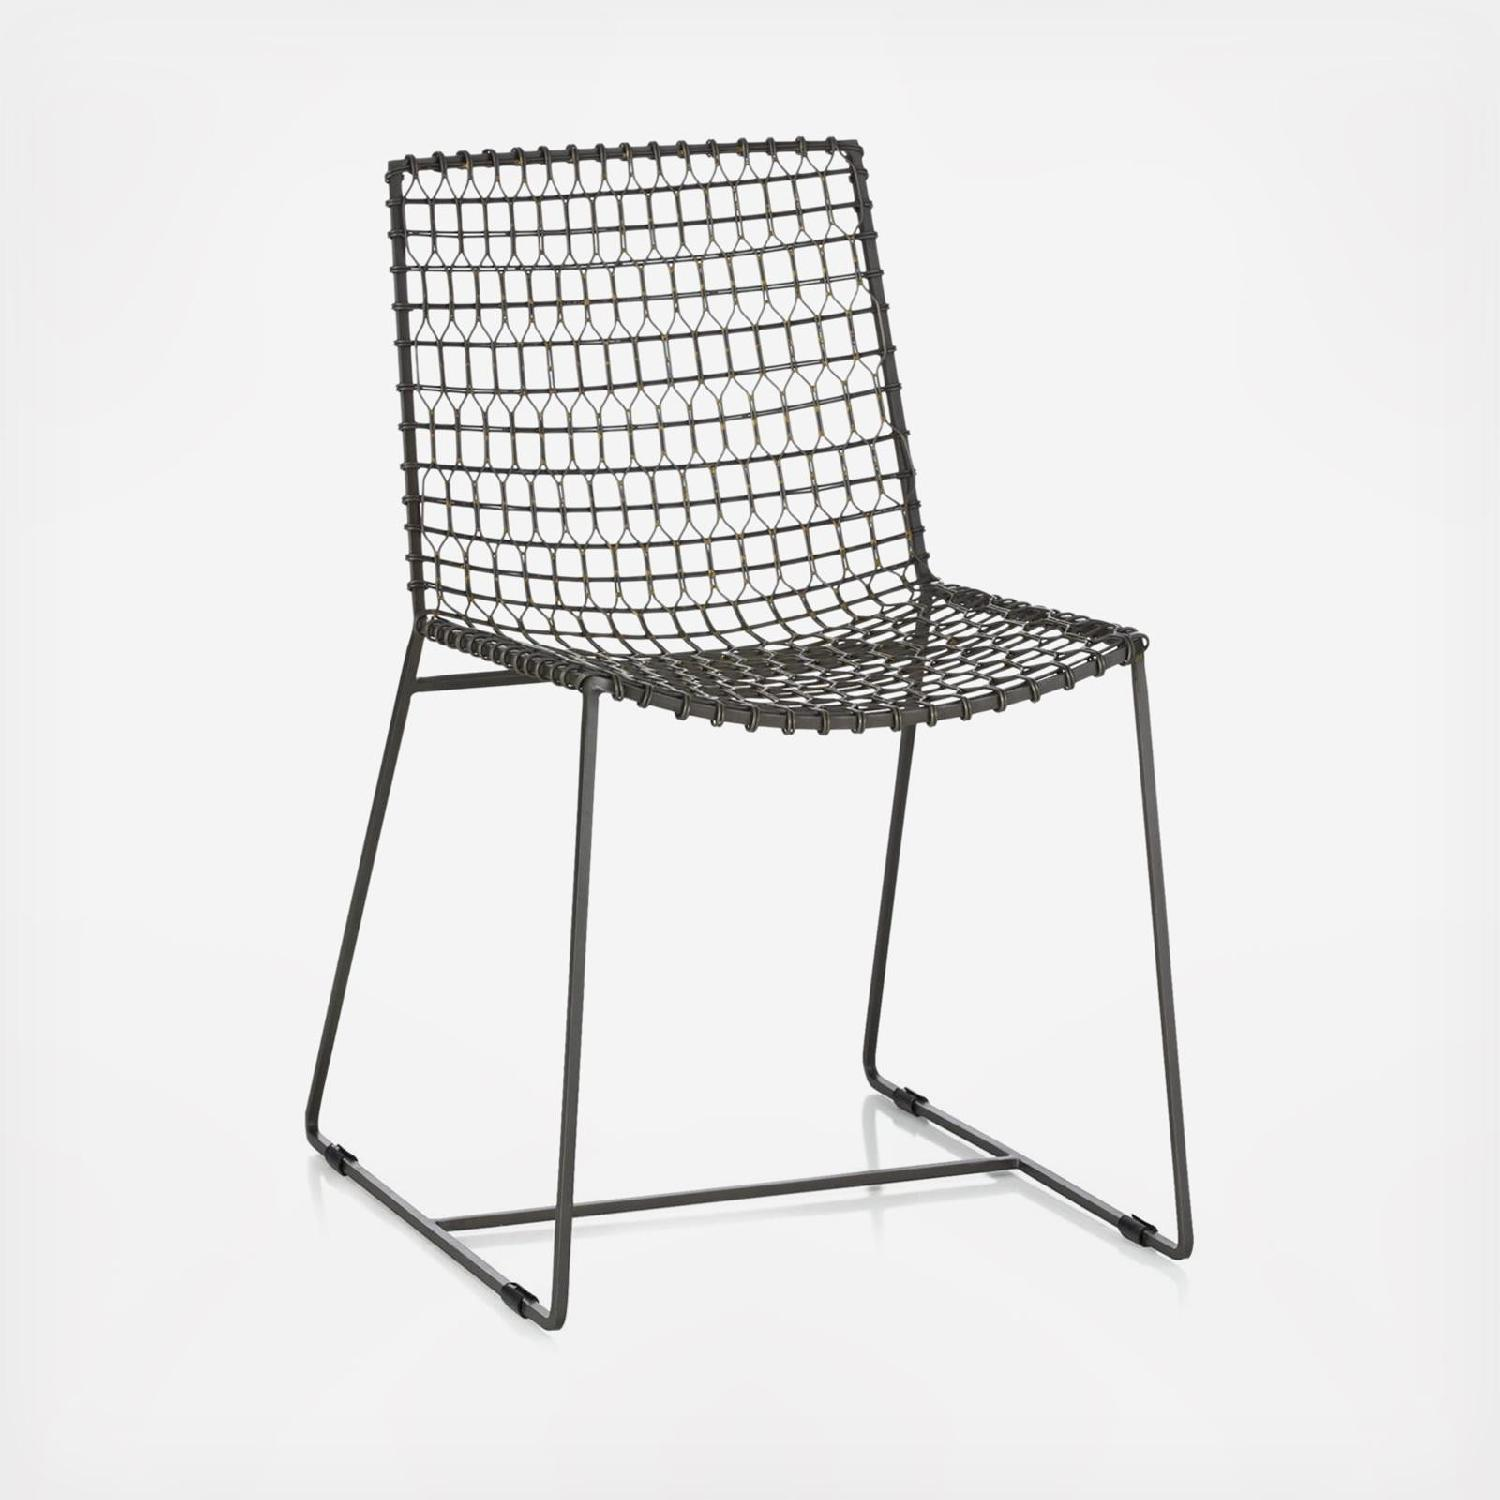 Crate & Barrel Tig Metal Dining Chairs - image-0